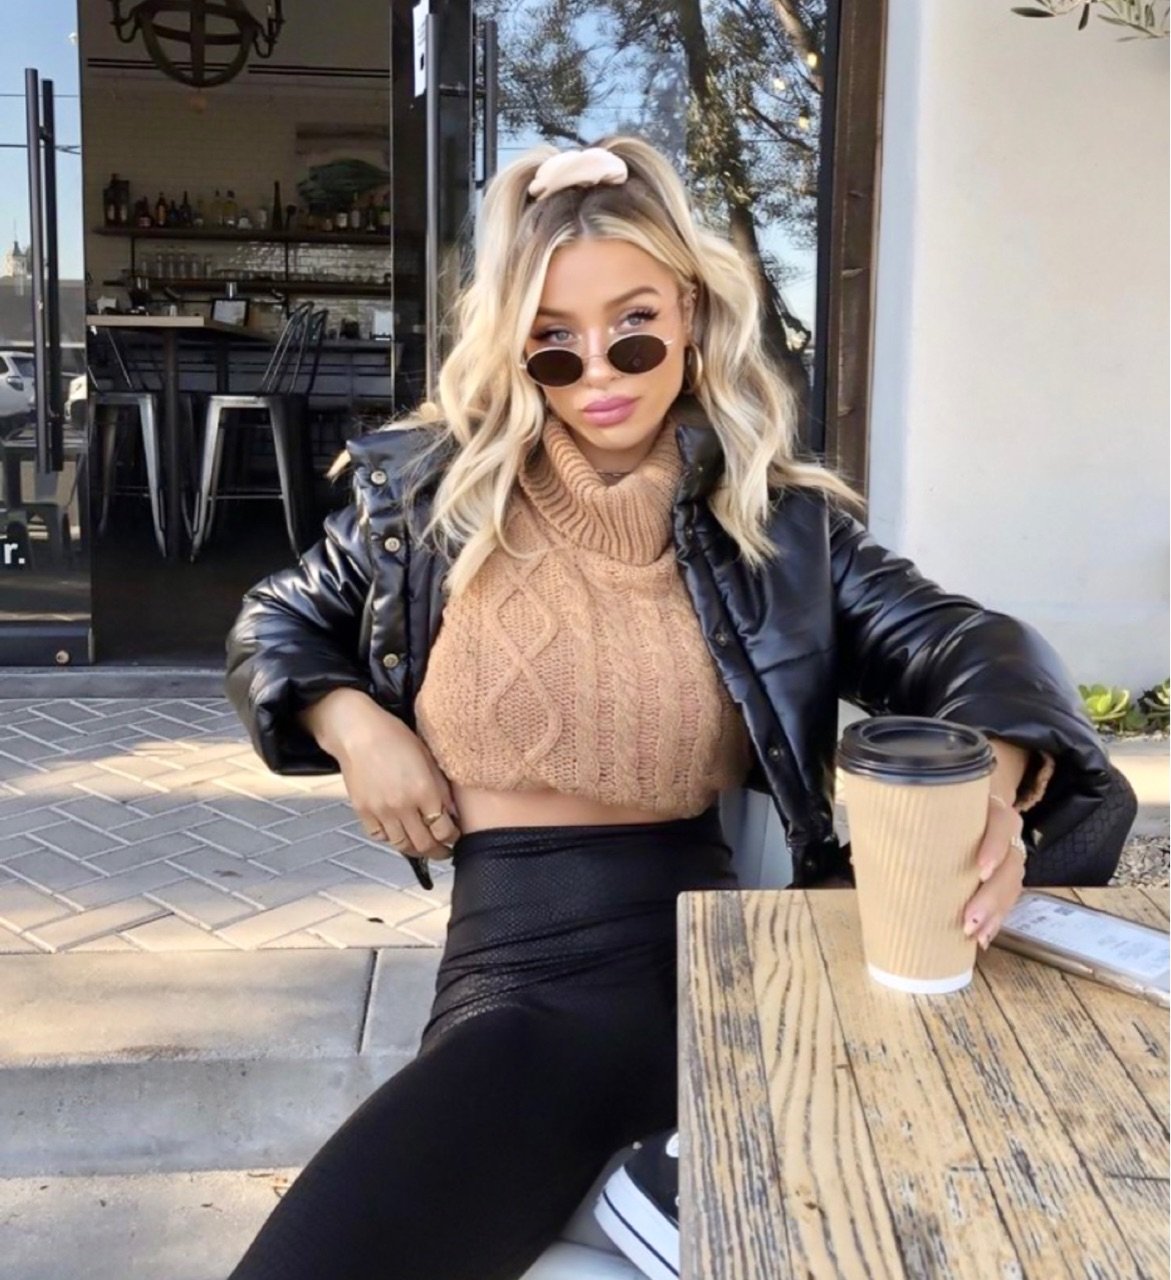 coffee and outfit image